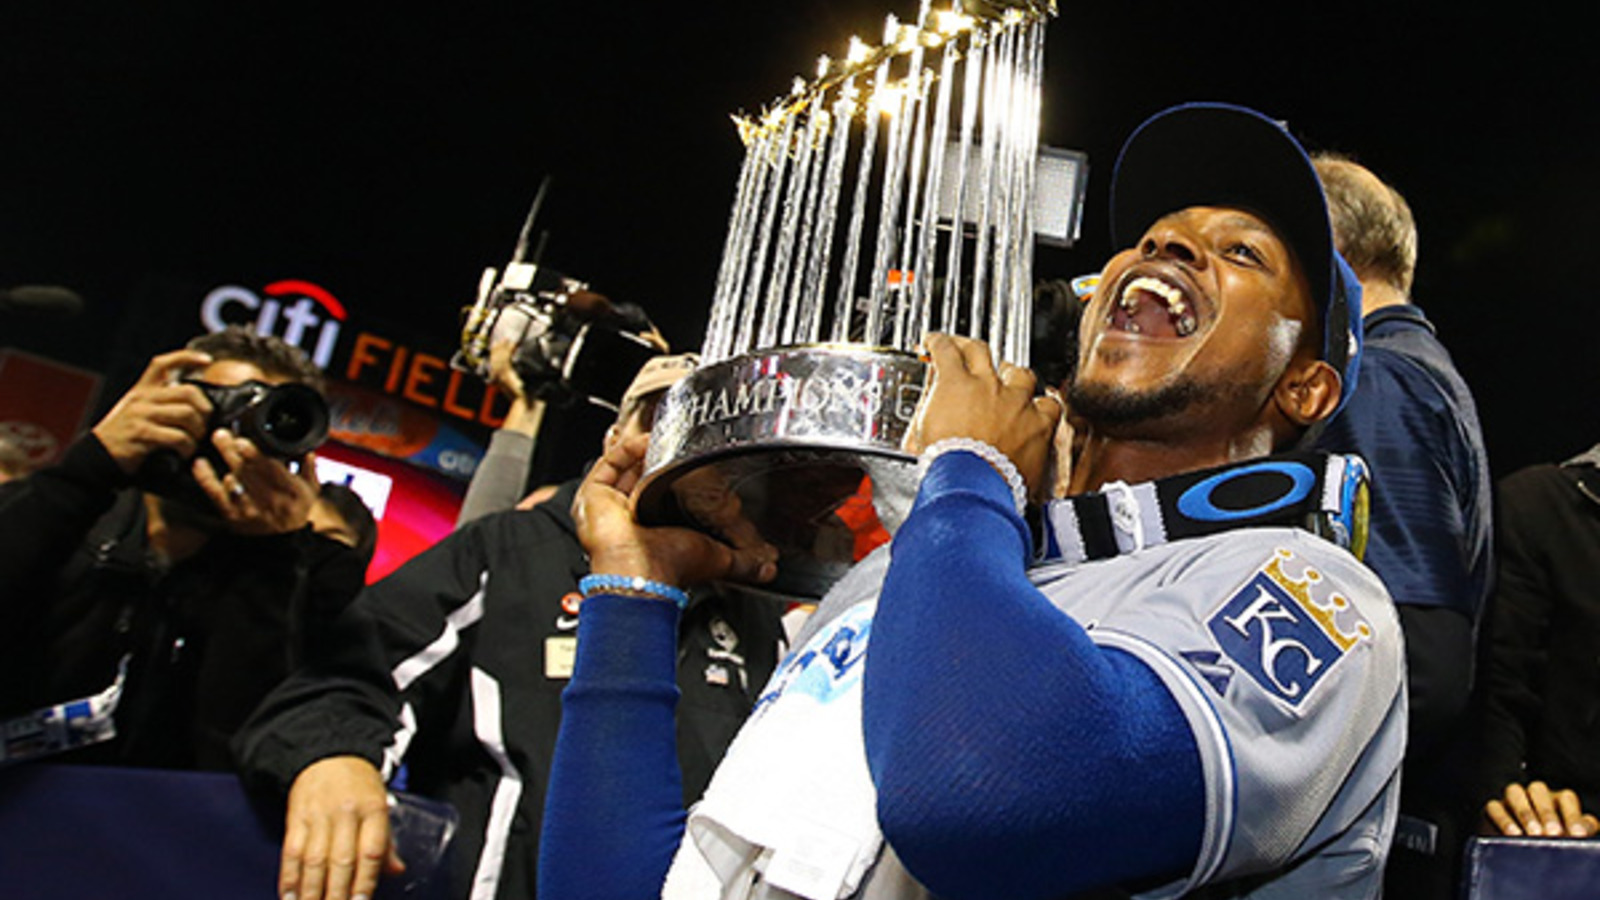 Royals outfielder gets street named after him after World Series win